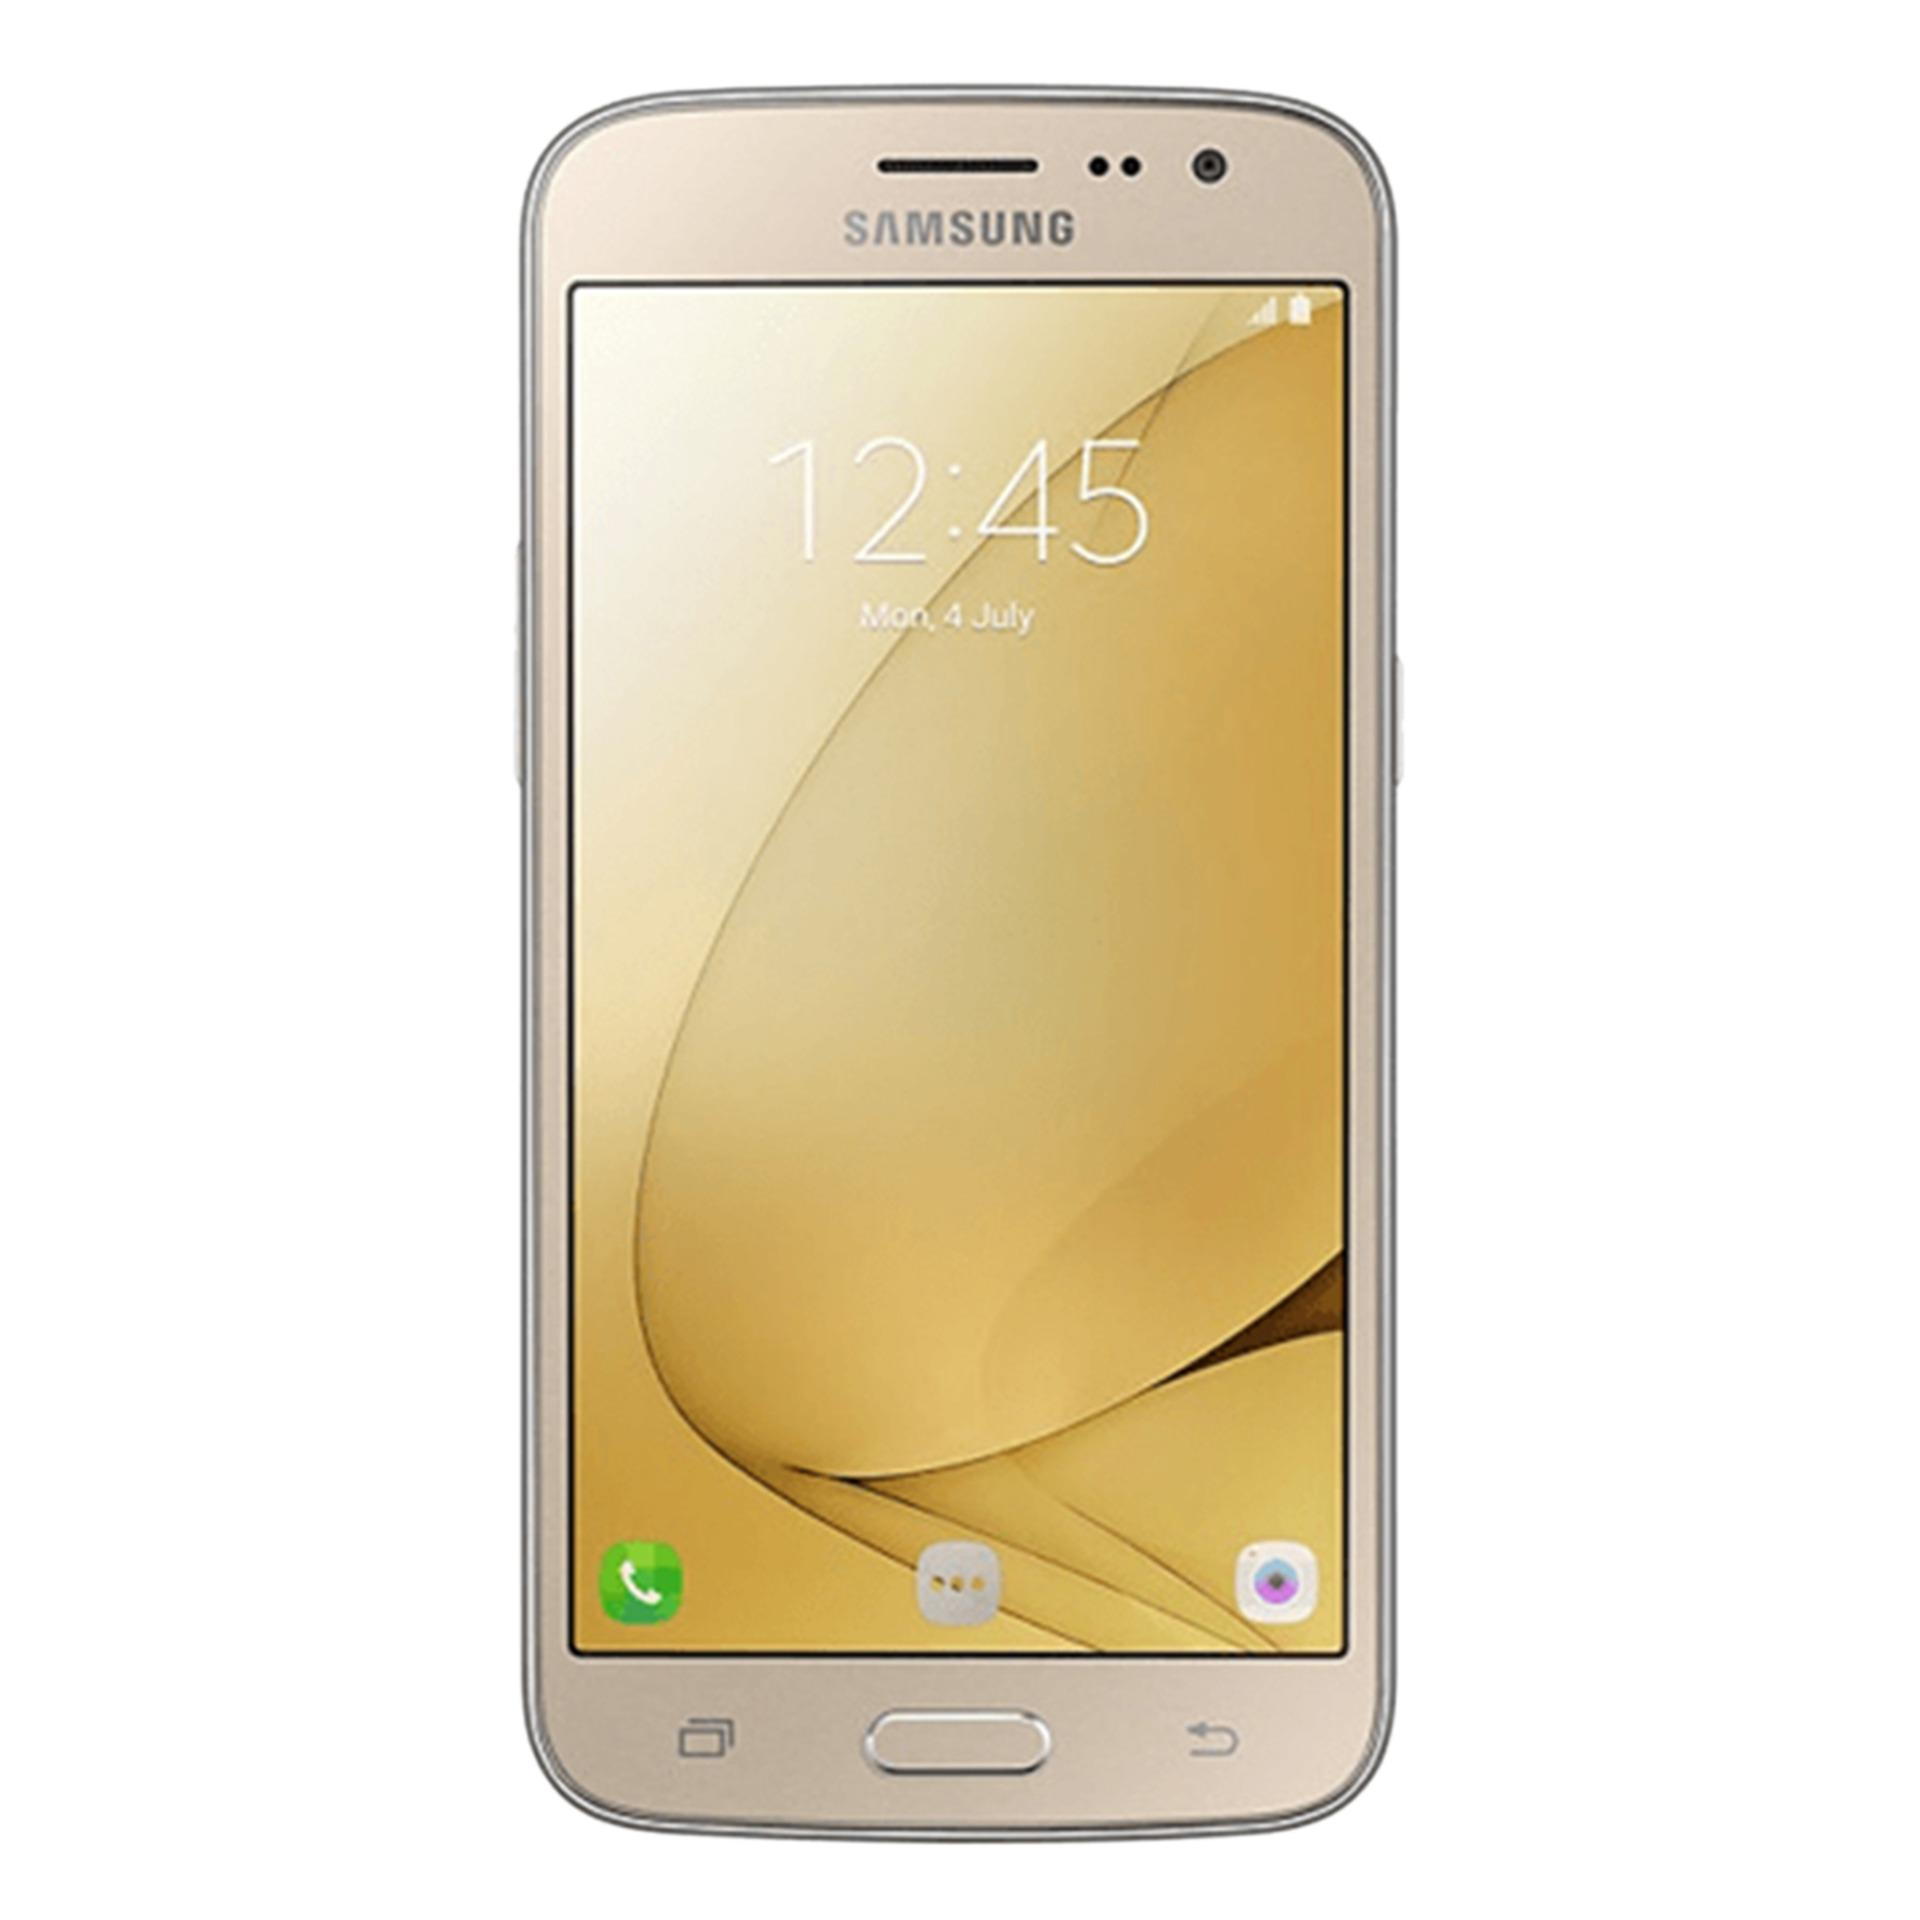 Samsung Mobile Phone In Bangladesh At Best Price Galaxy Note 3 White Gold J2 Pro Smartphone 5 2gb Ram 16gb Rom